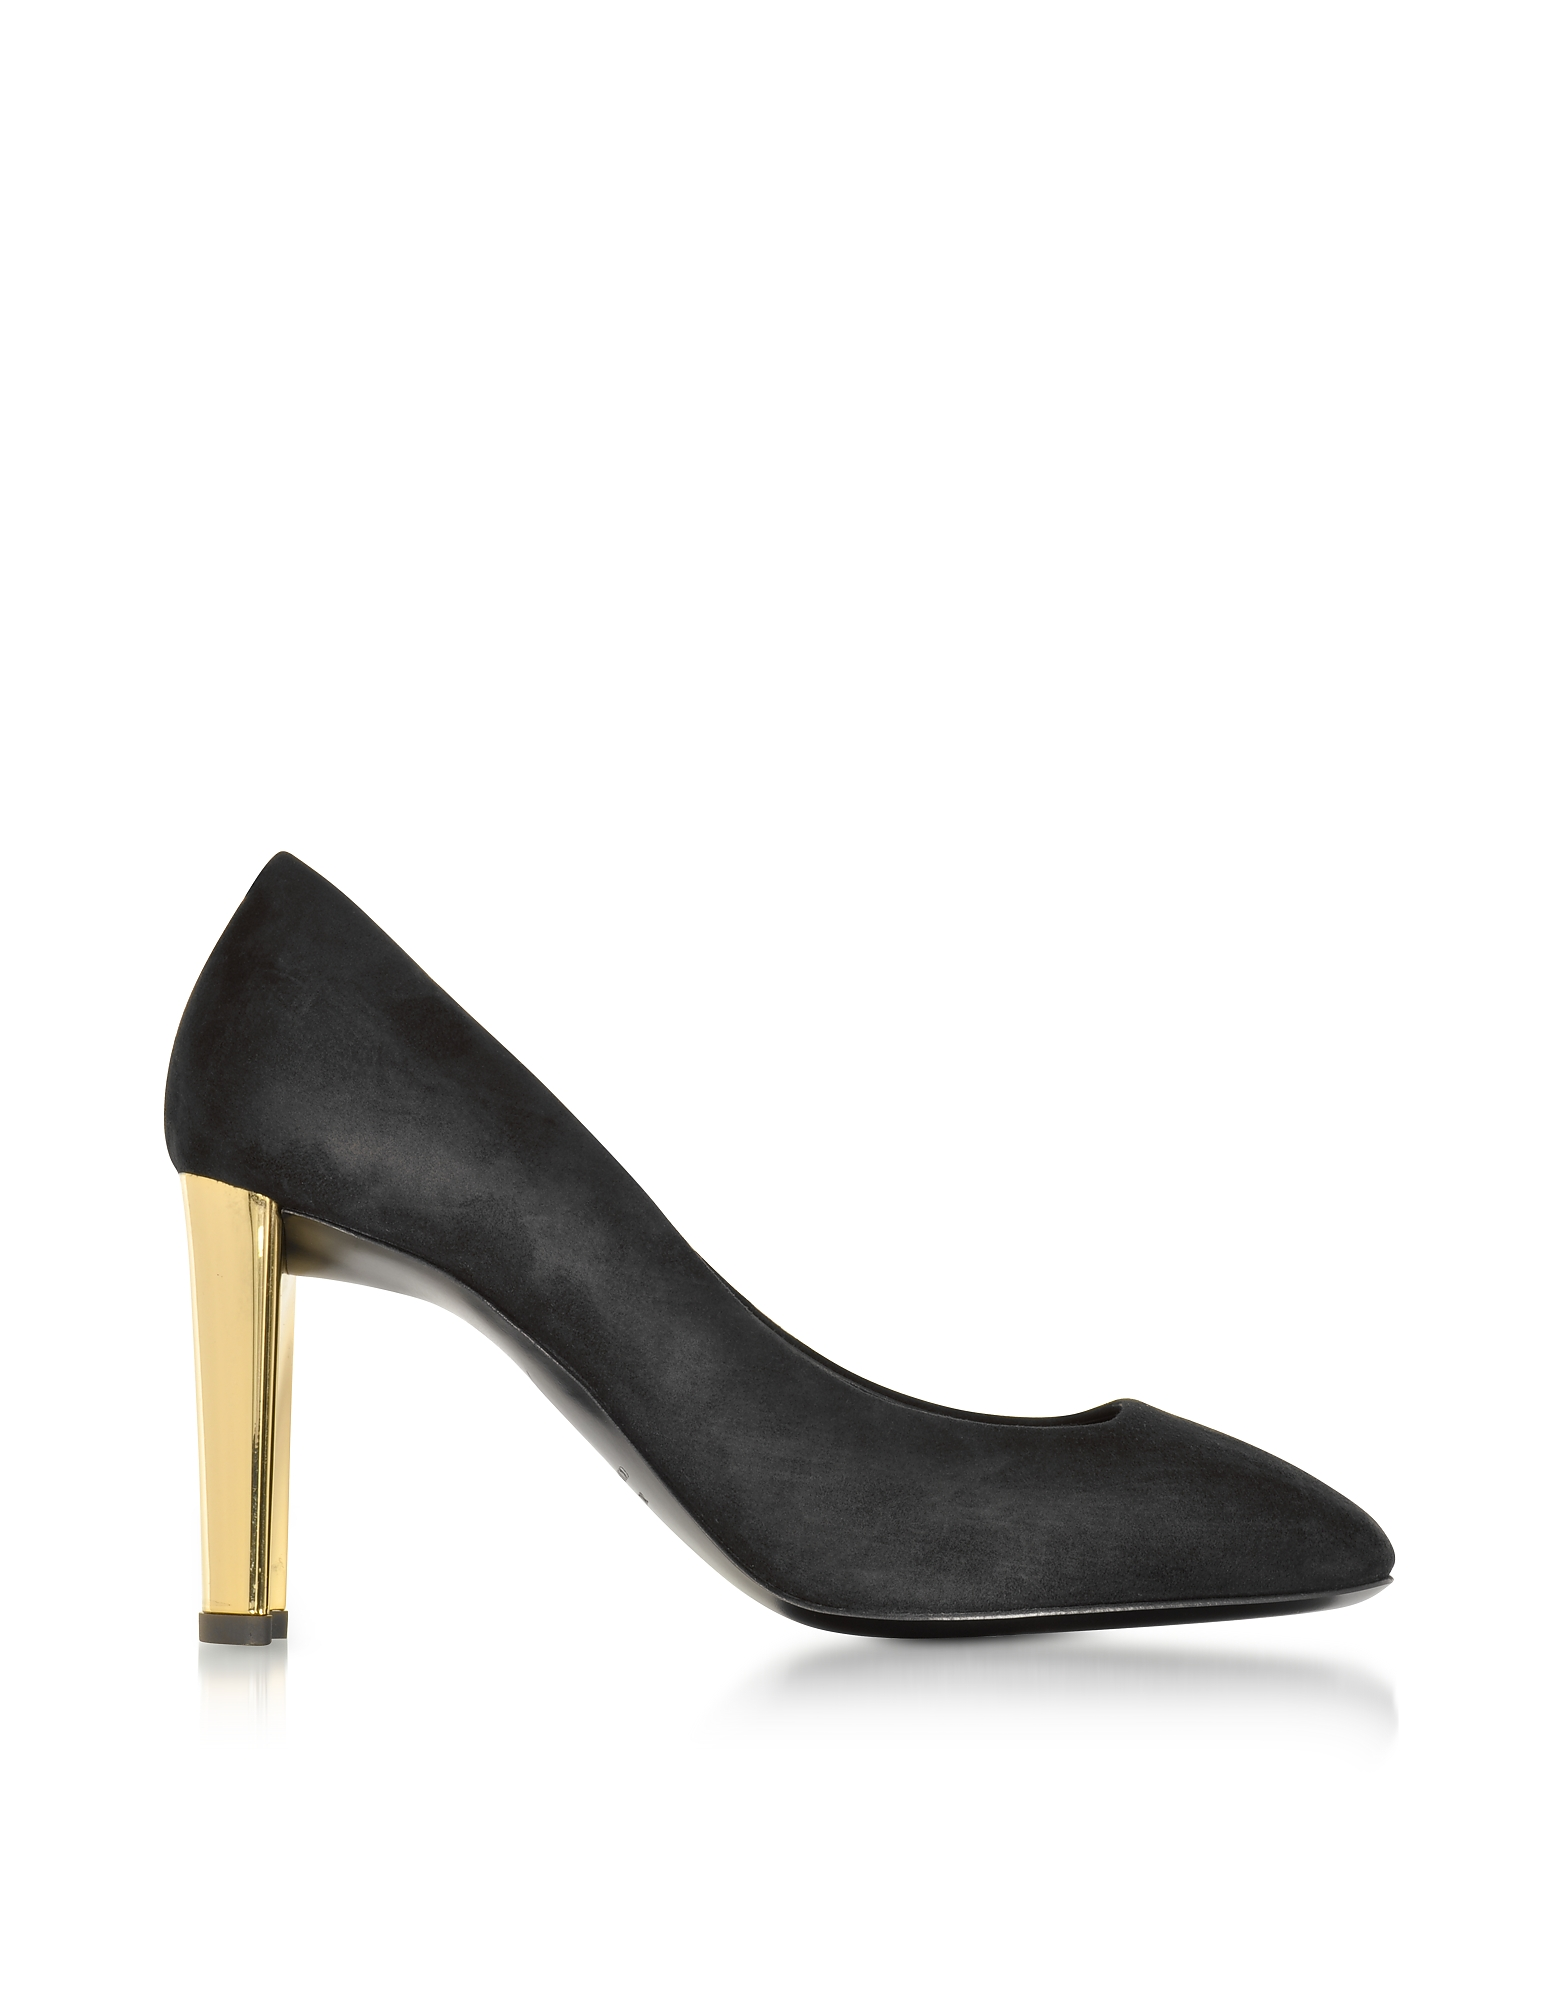 Giuseppe Zanotti Shoes, Black Suede Pump w/Golden Heel